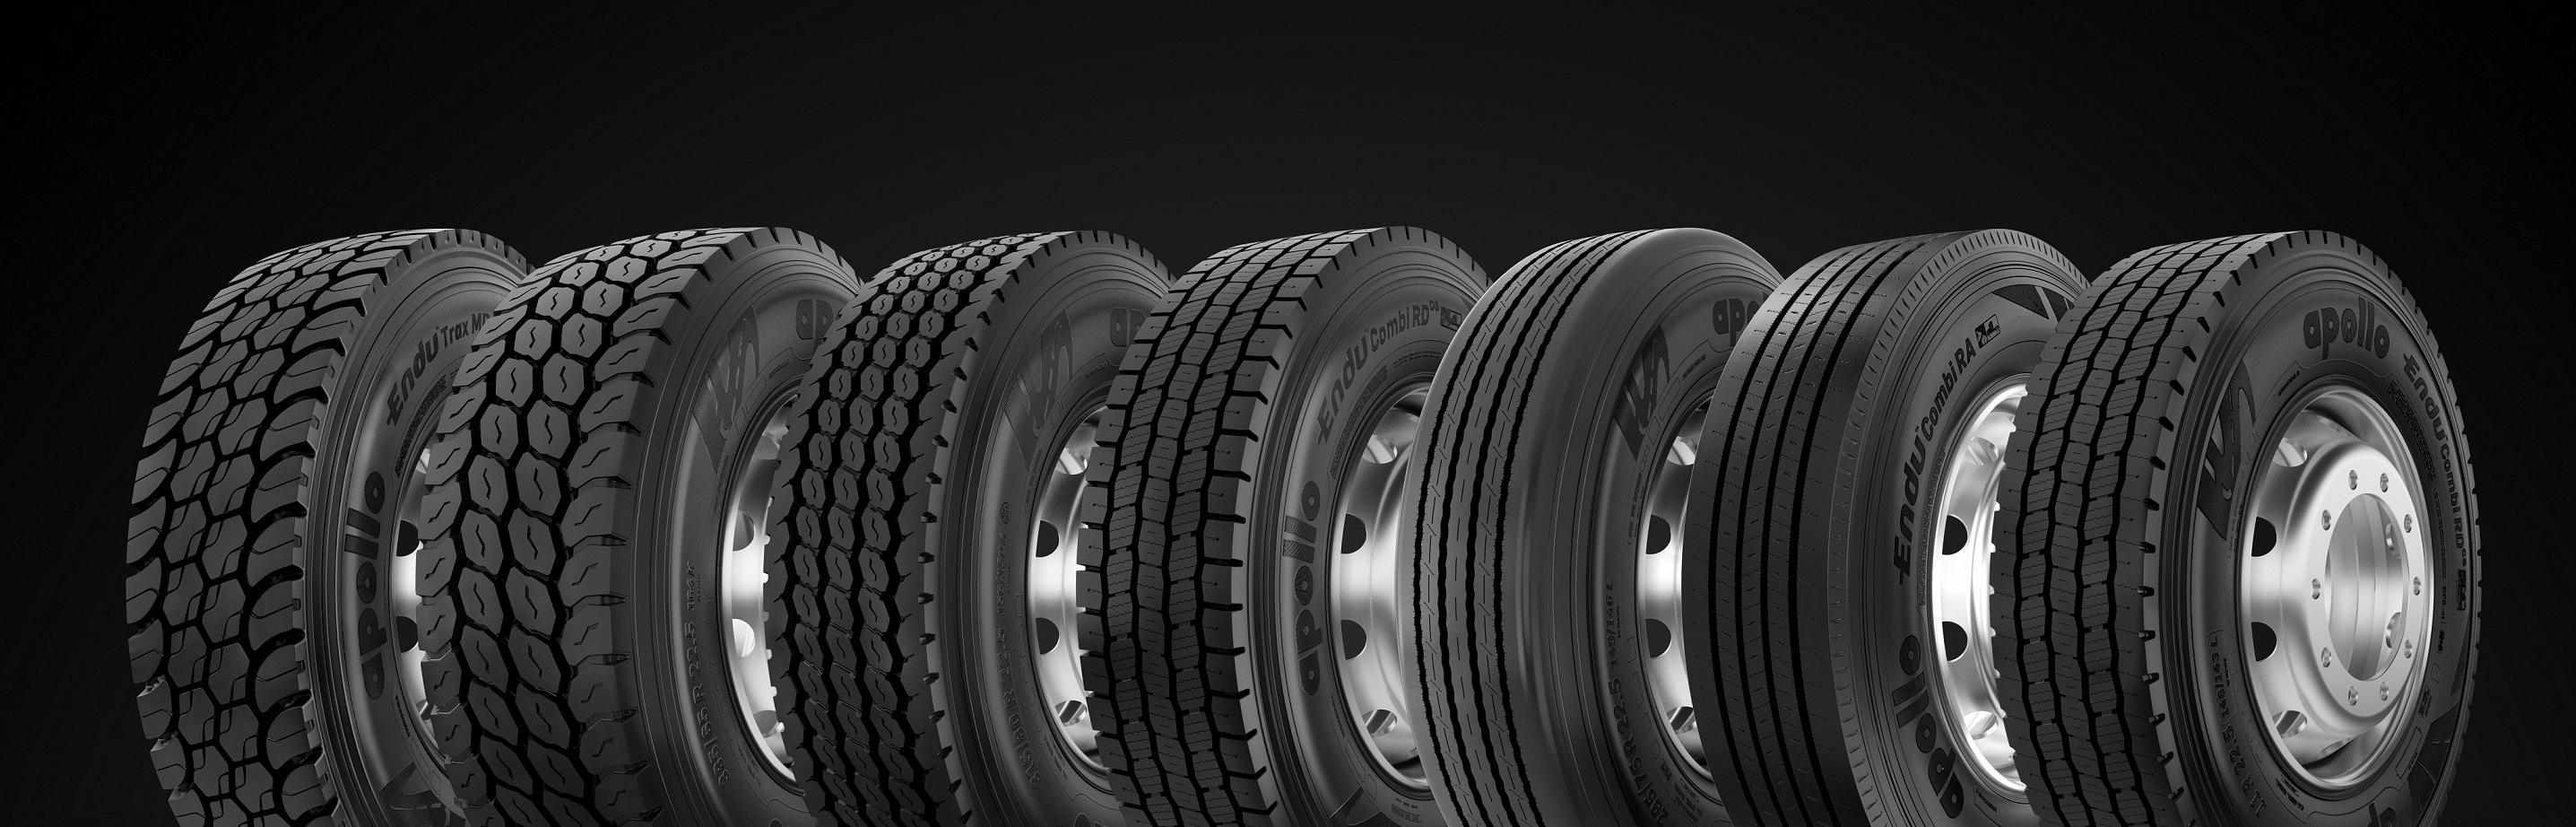 Apollo Tyres to #GoTheDistance in North American truck-bus tyre market